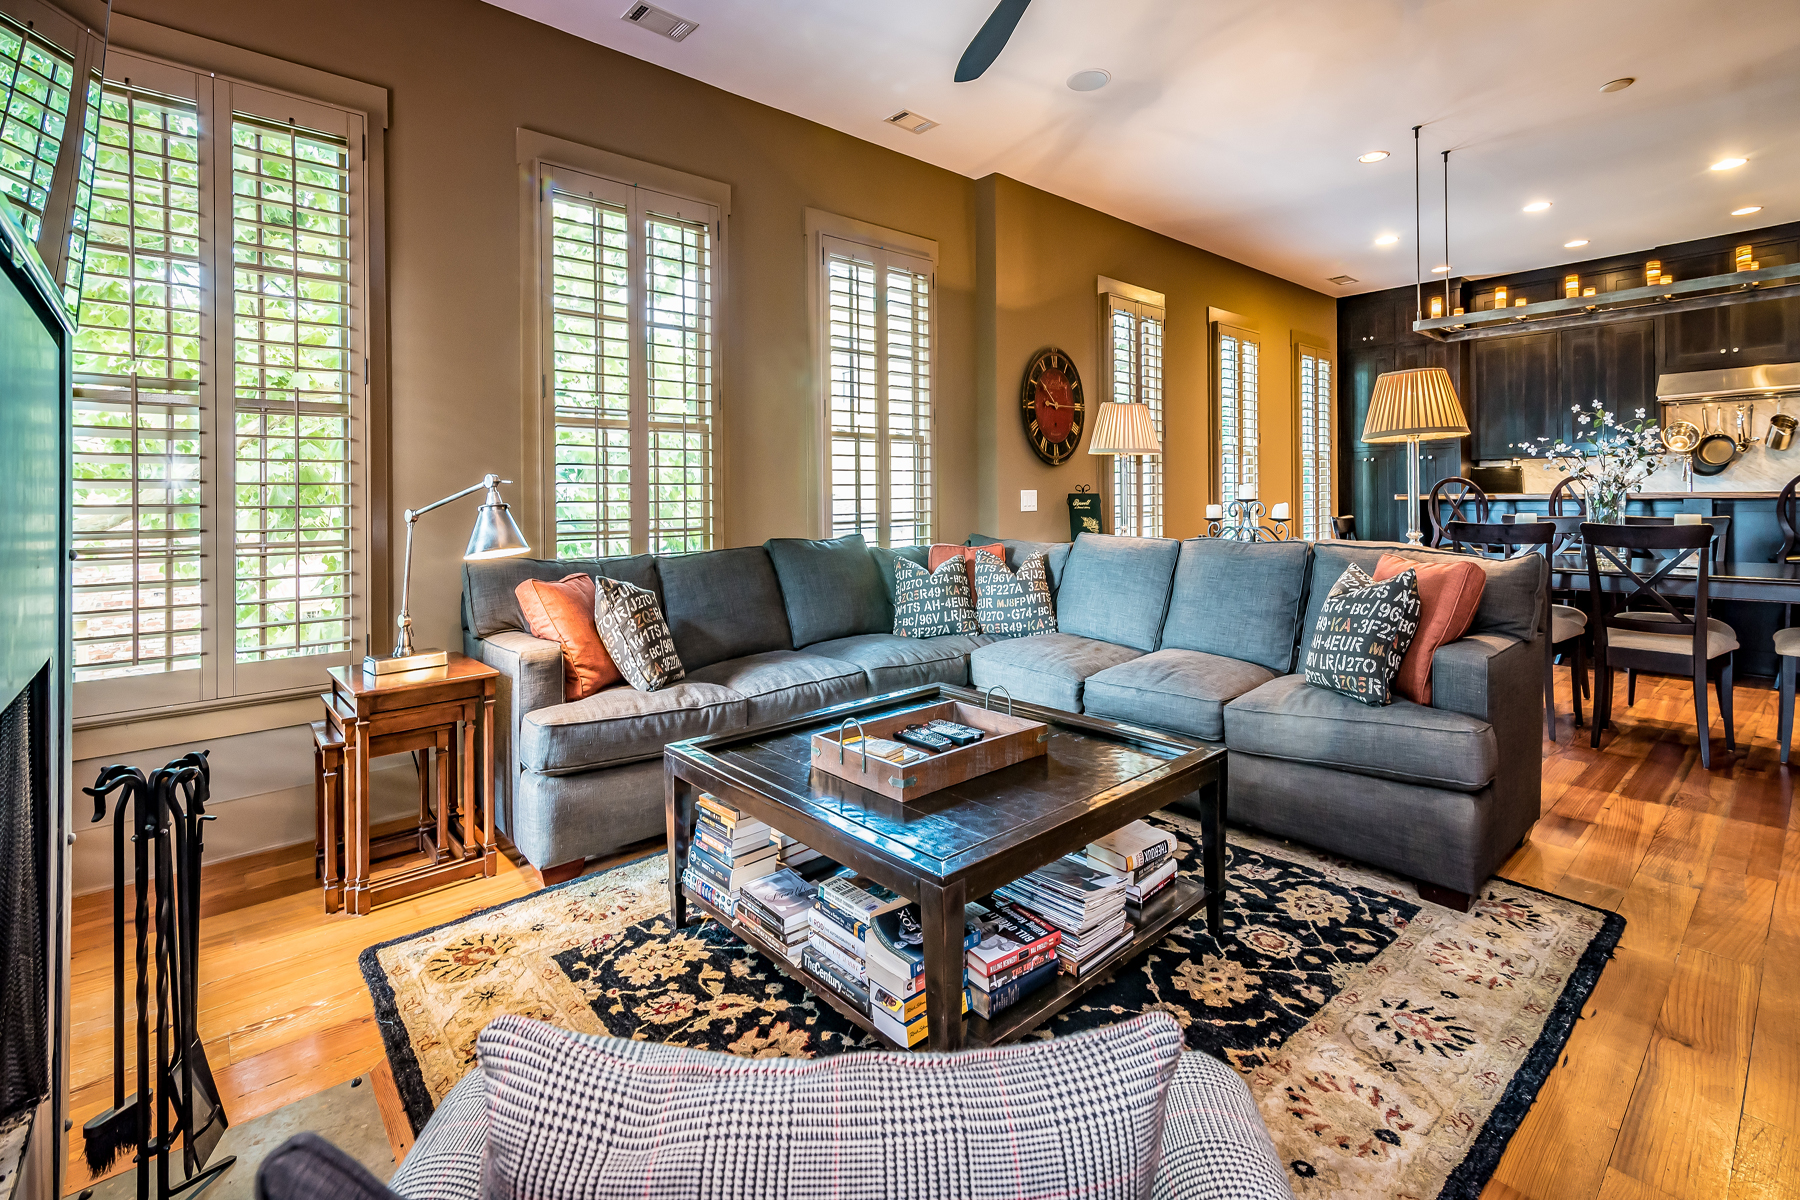 Additional photo for property listing at Amazing Modern Historical Home 43 Sloan St Roswell, Georgia 30075 Hoa Kỳ